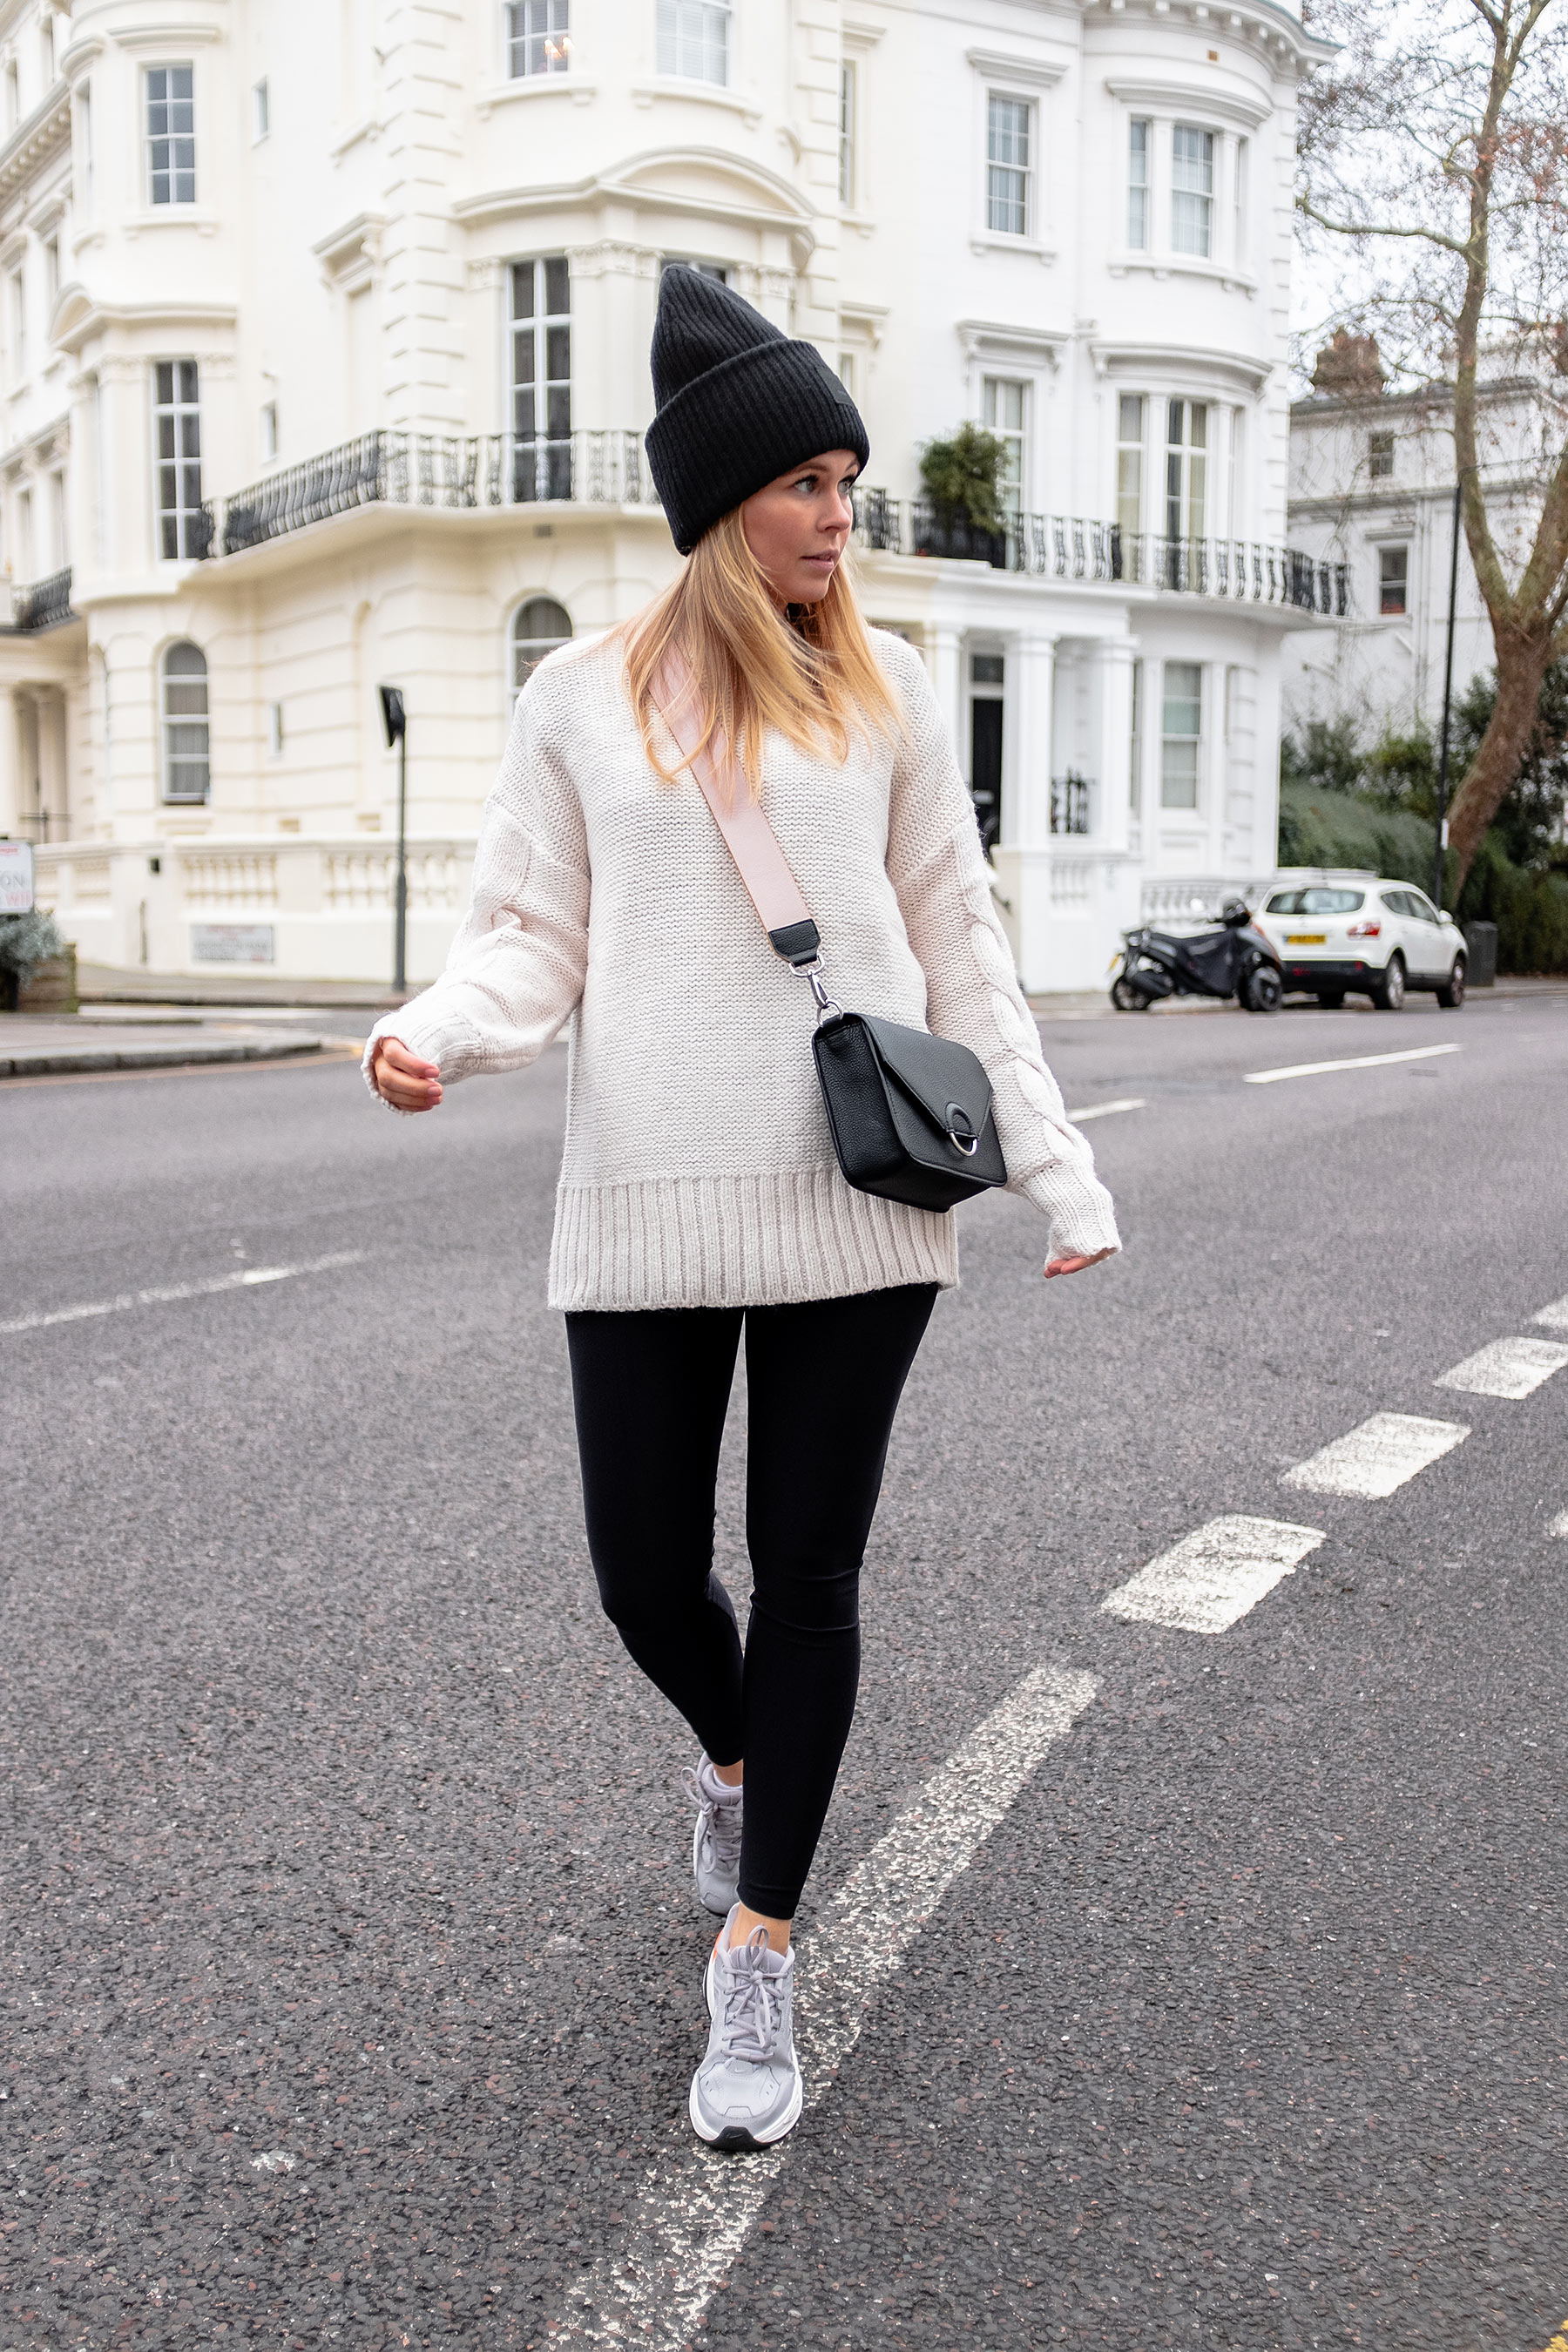 notting hill fashion blogger london sunnyinga